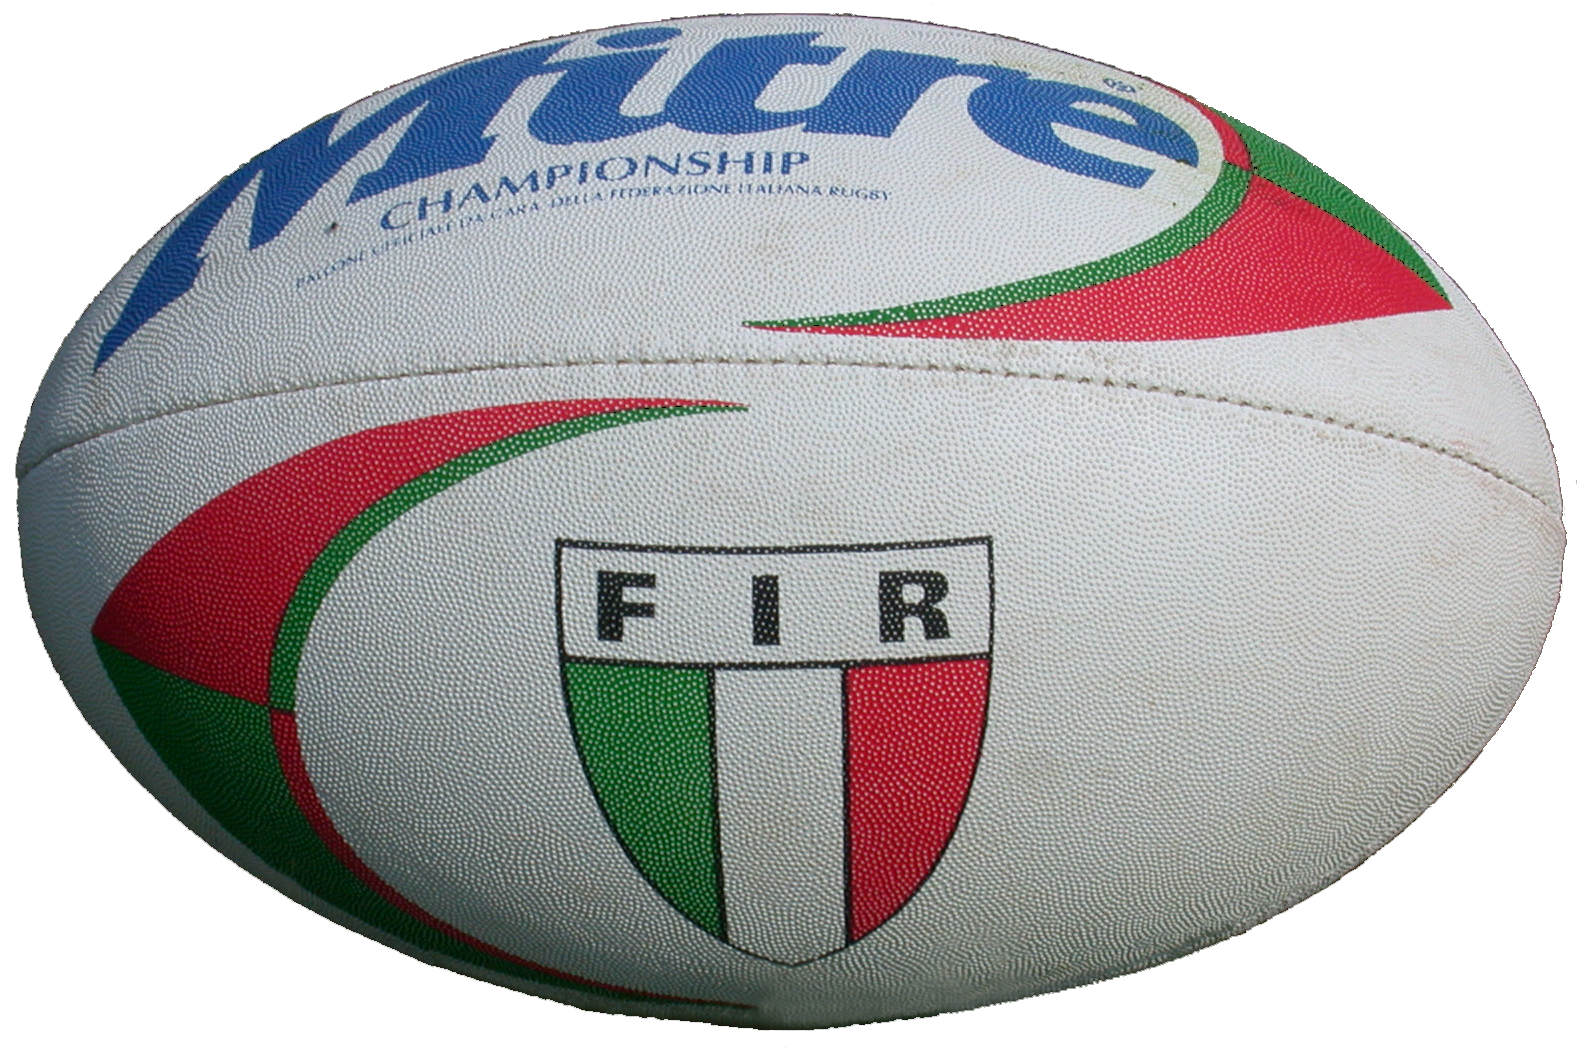 https://upload.wikimedia.org/wikipedia/commons/a/ab/Palla_da_Rugby.png